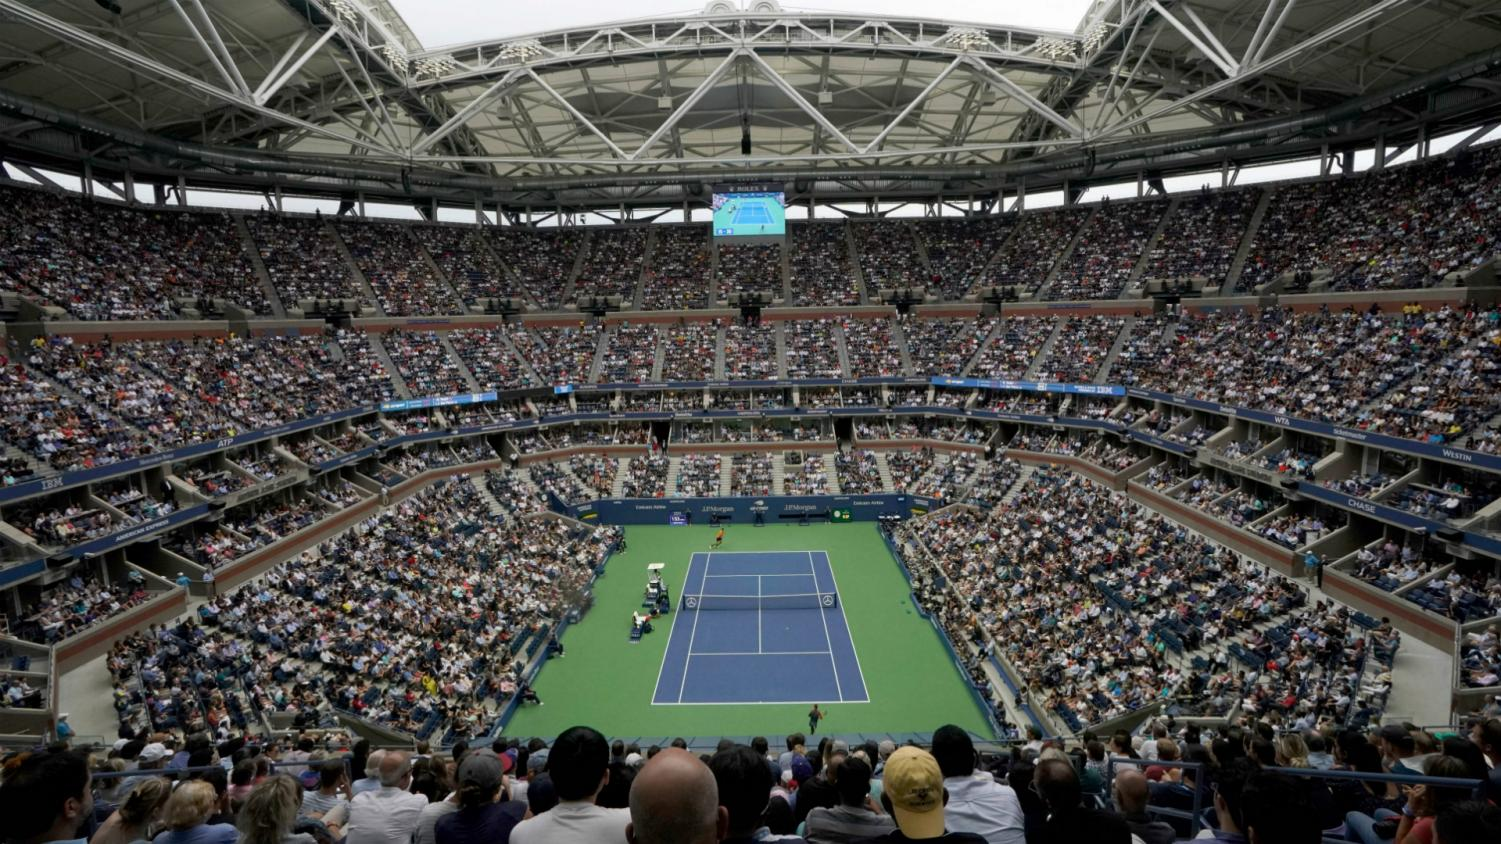 A common sight at Arthur Ashe Stadium as a sold-out crowd watches the best tennis players in the world.